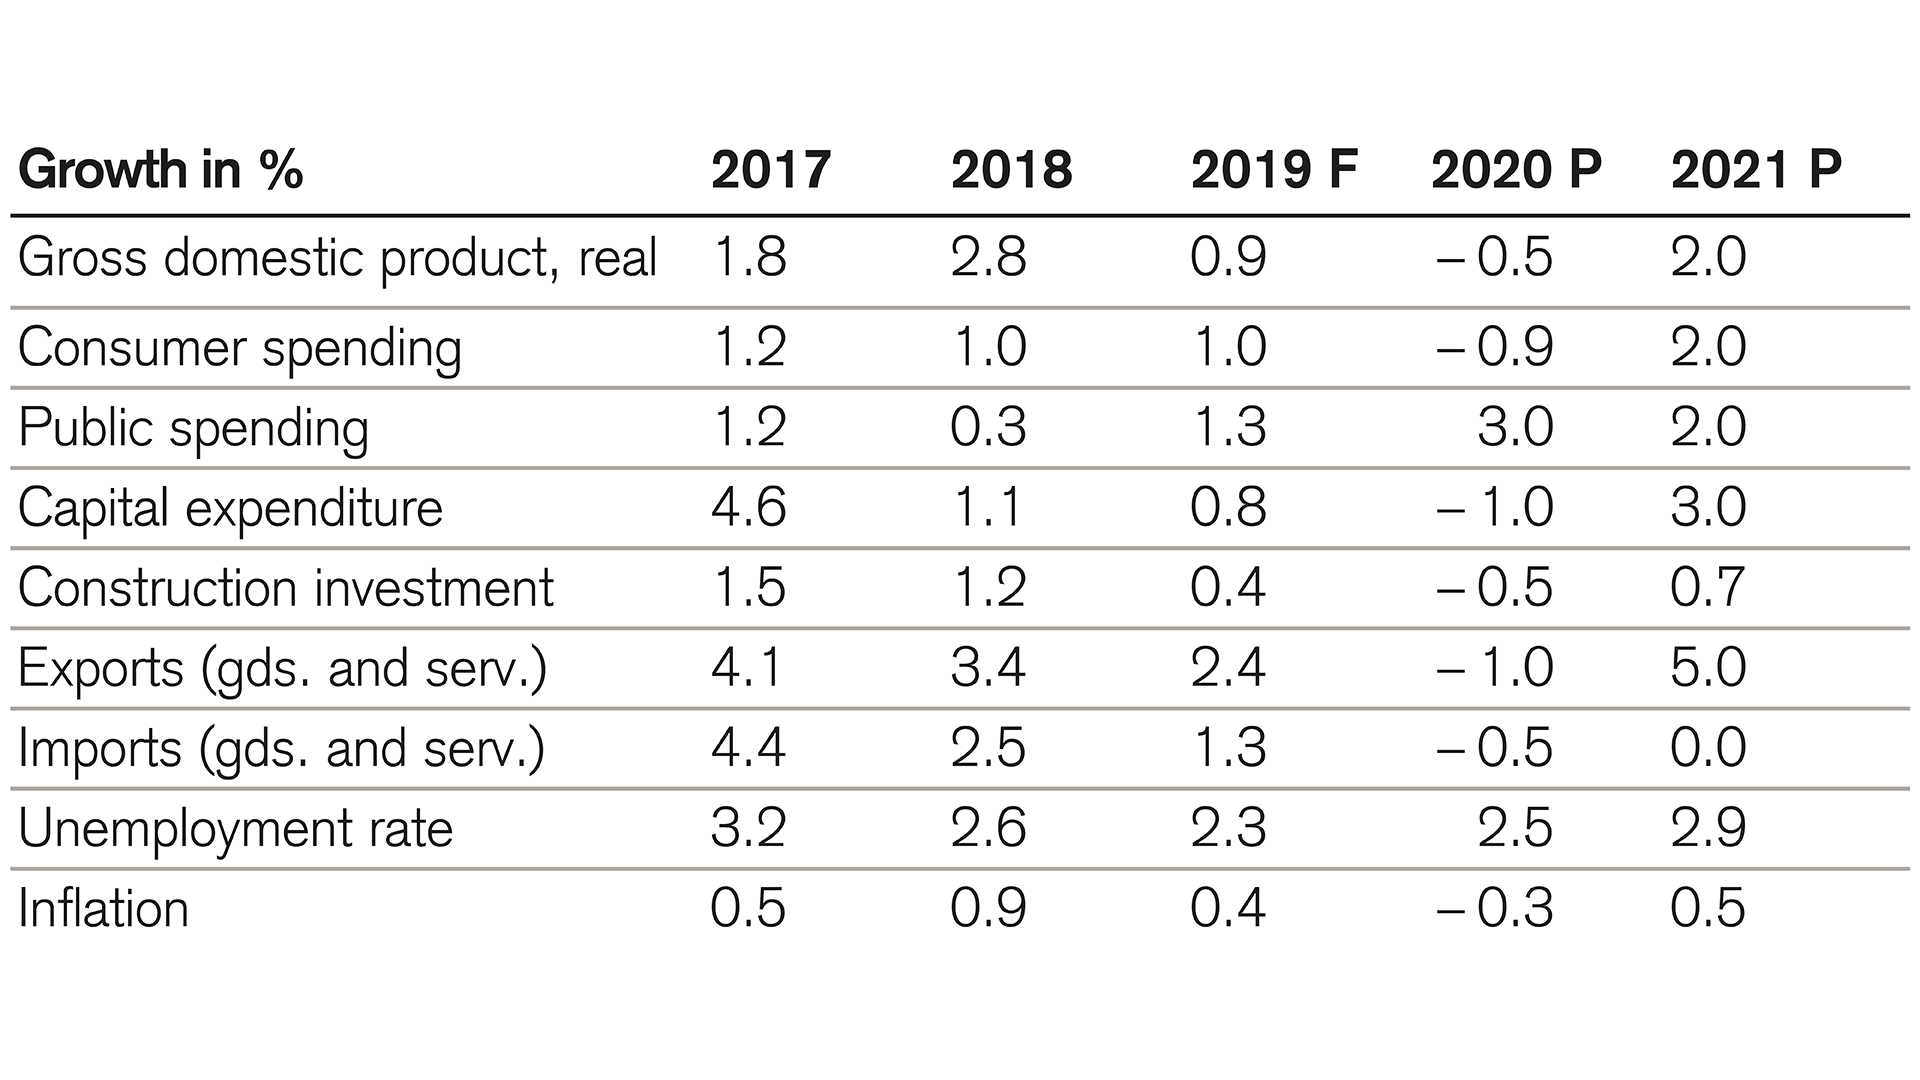 Economic growth and private consumption will fall sharply in 2020